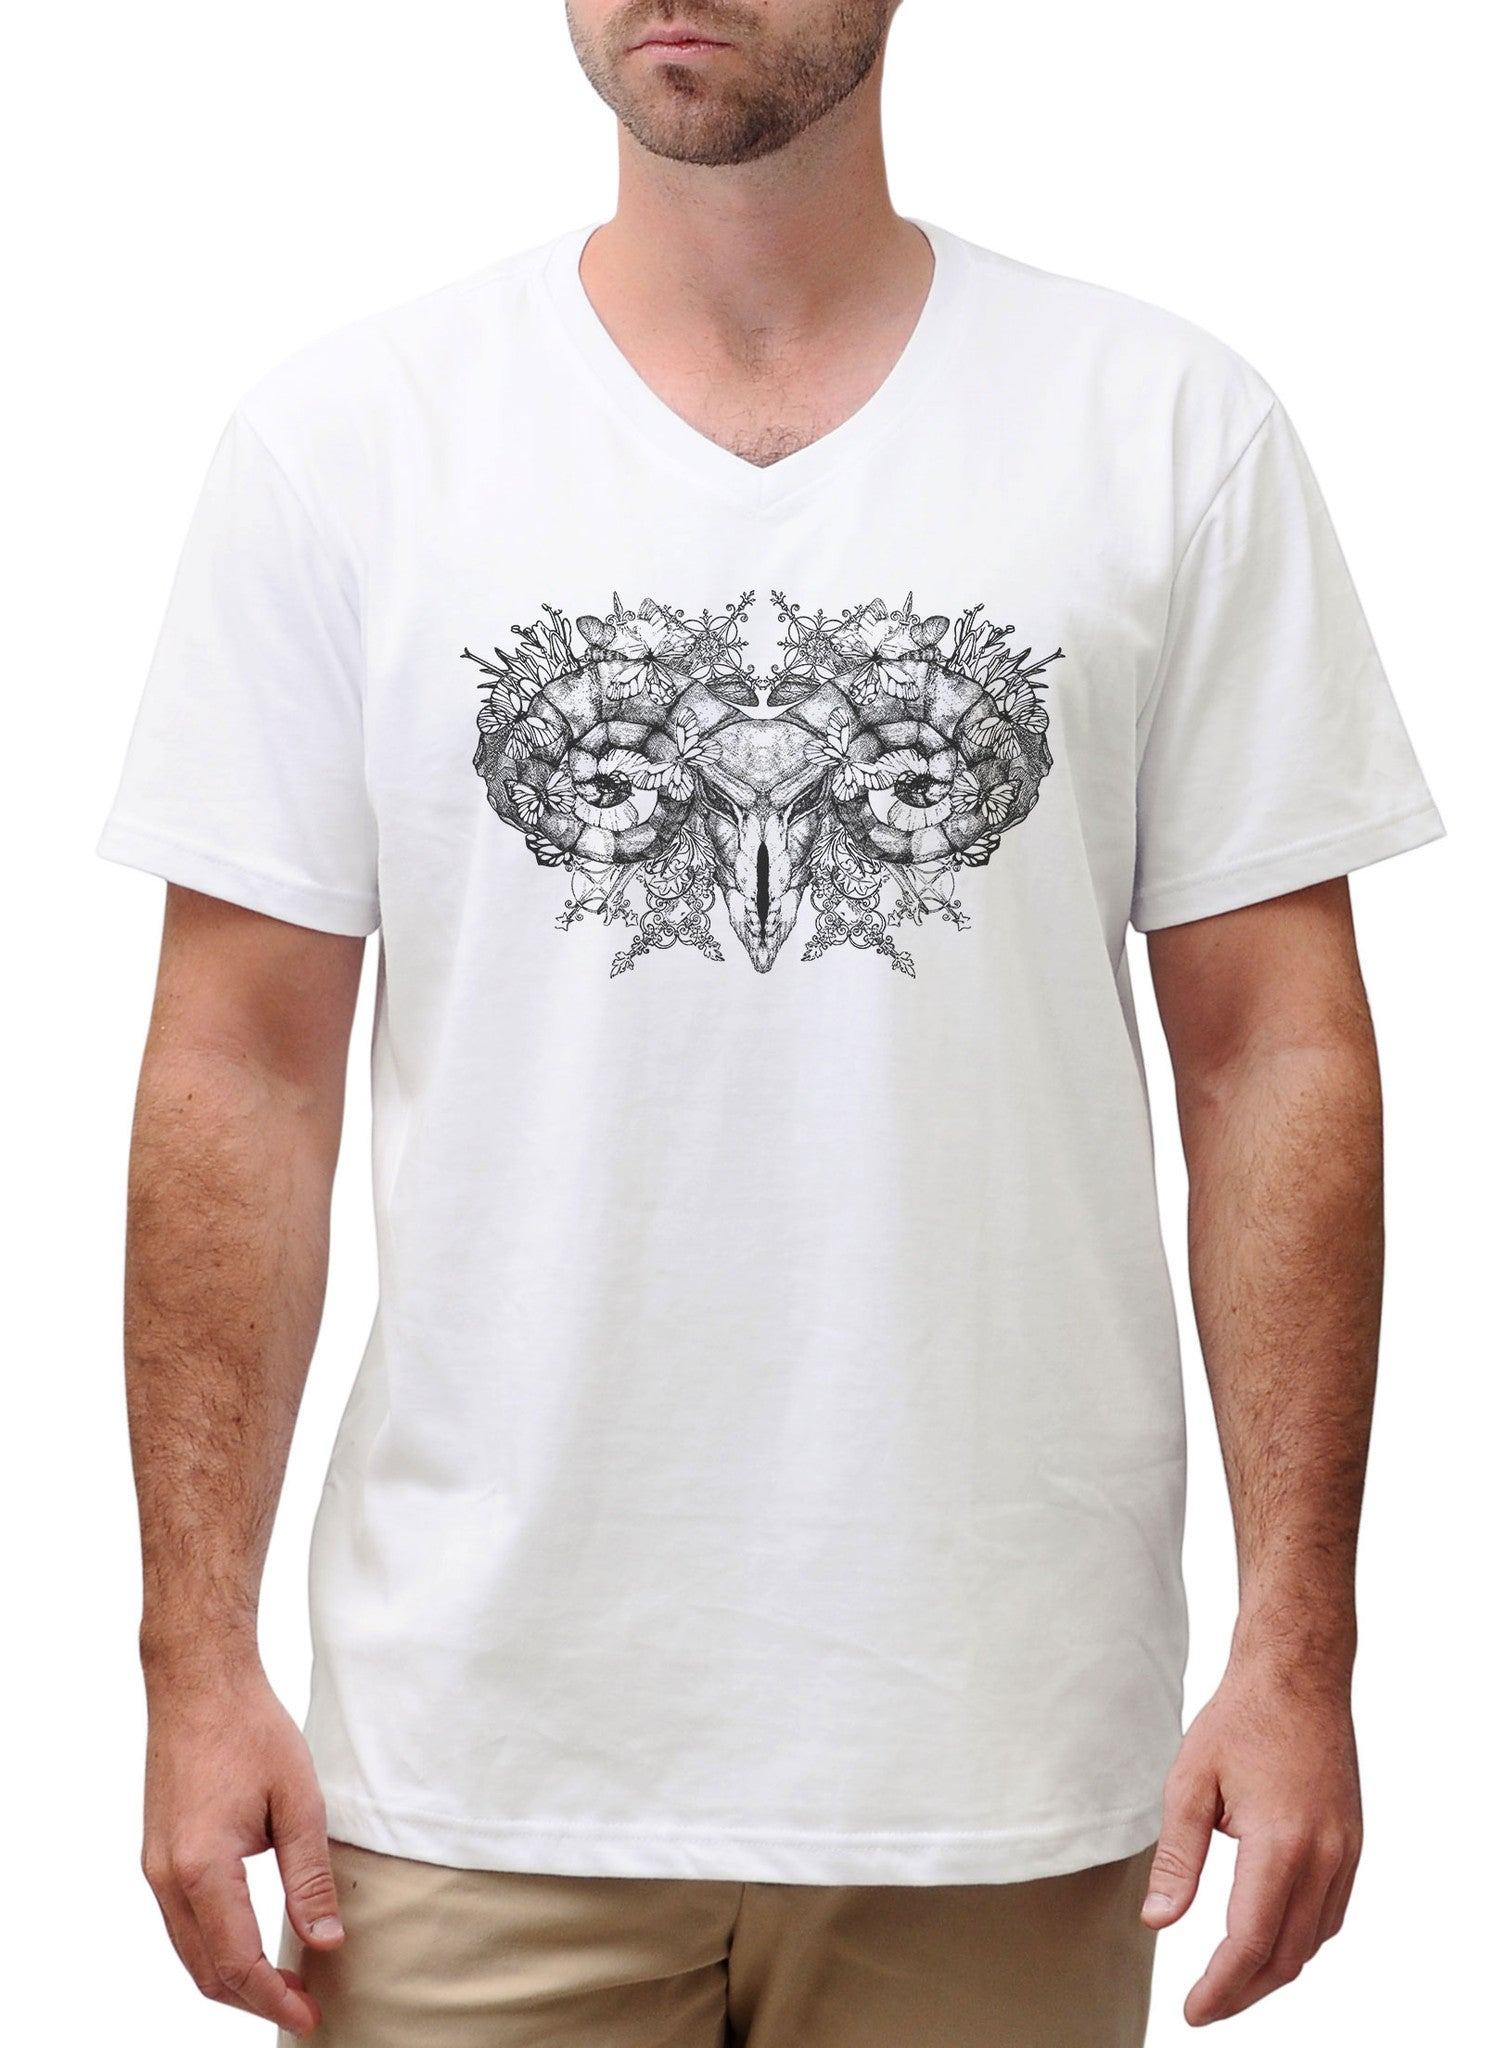 Men Aries skull with horns Graphic Printed Cotton Short Sleeves T-shirt MTS_02